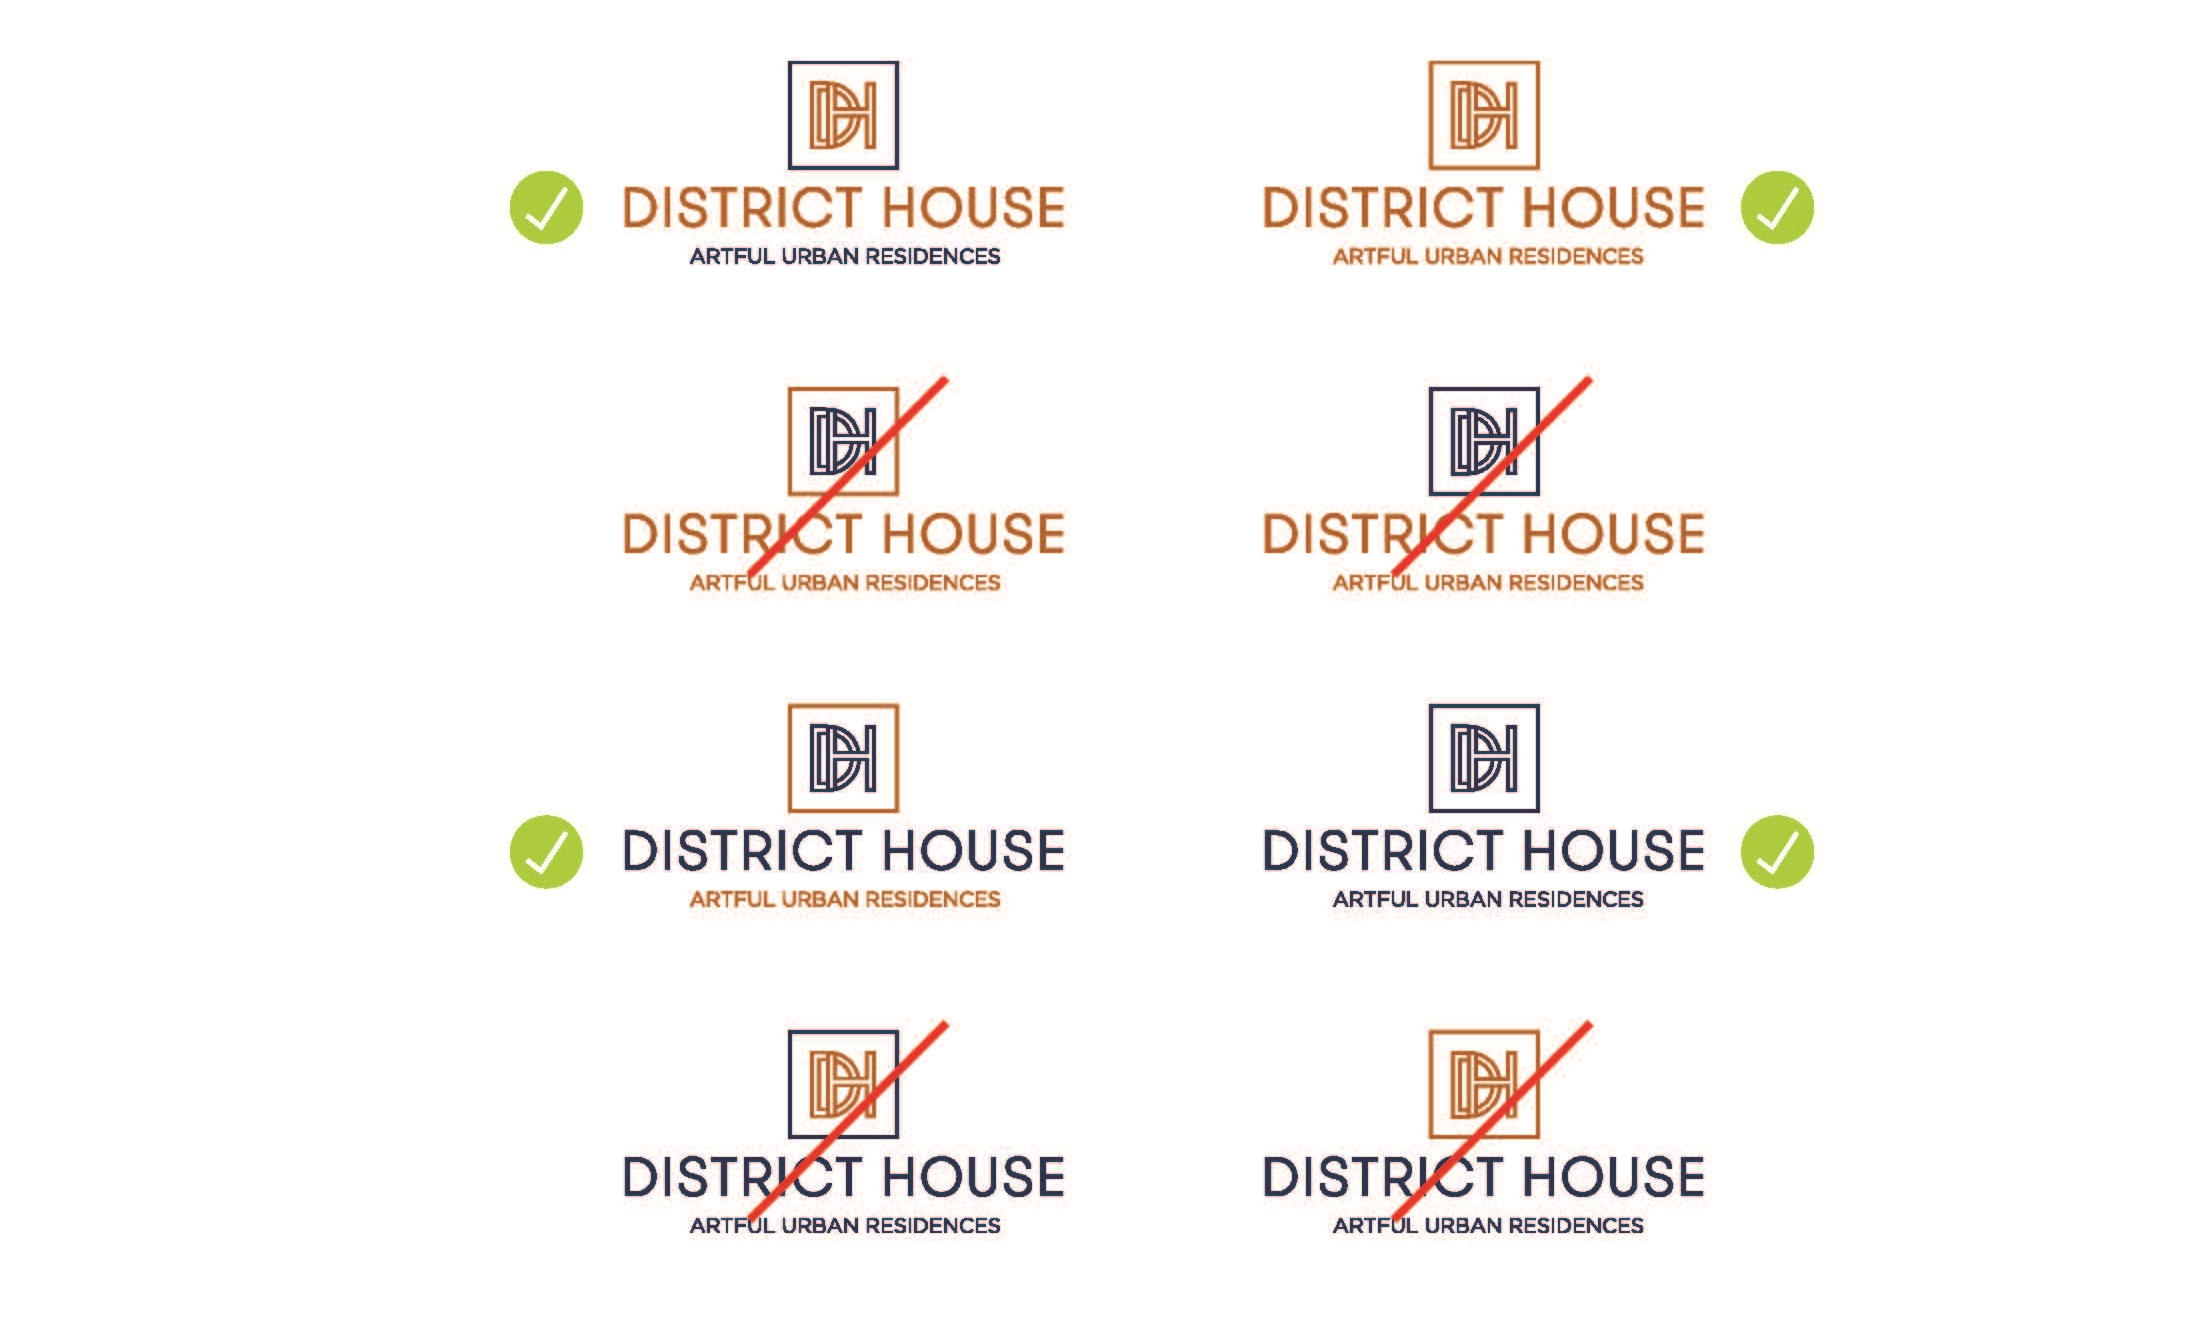 District House_Identity_Guide_031716_Page_13.jpg